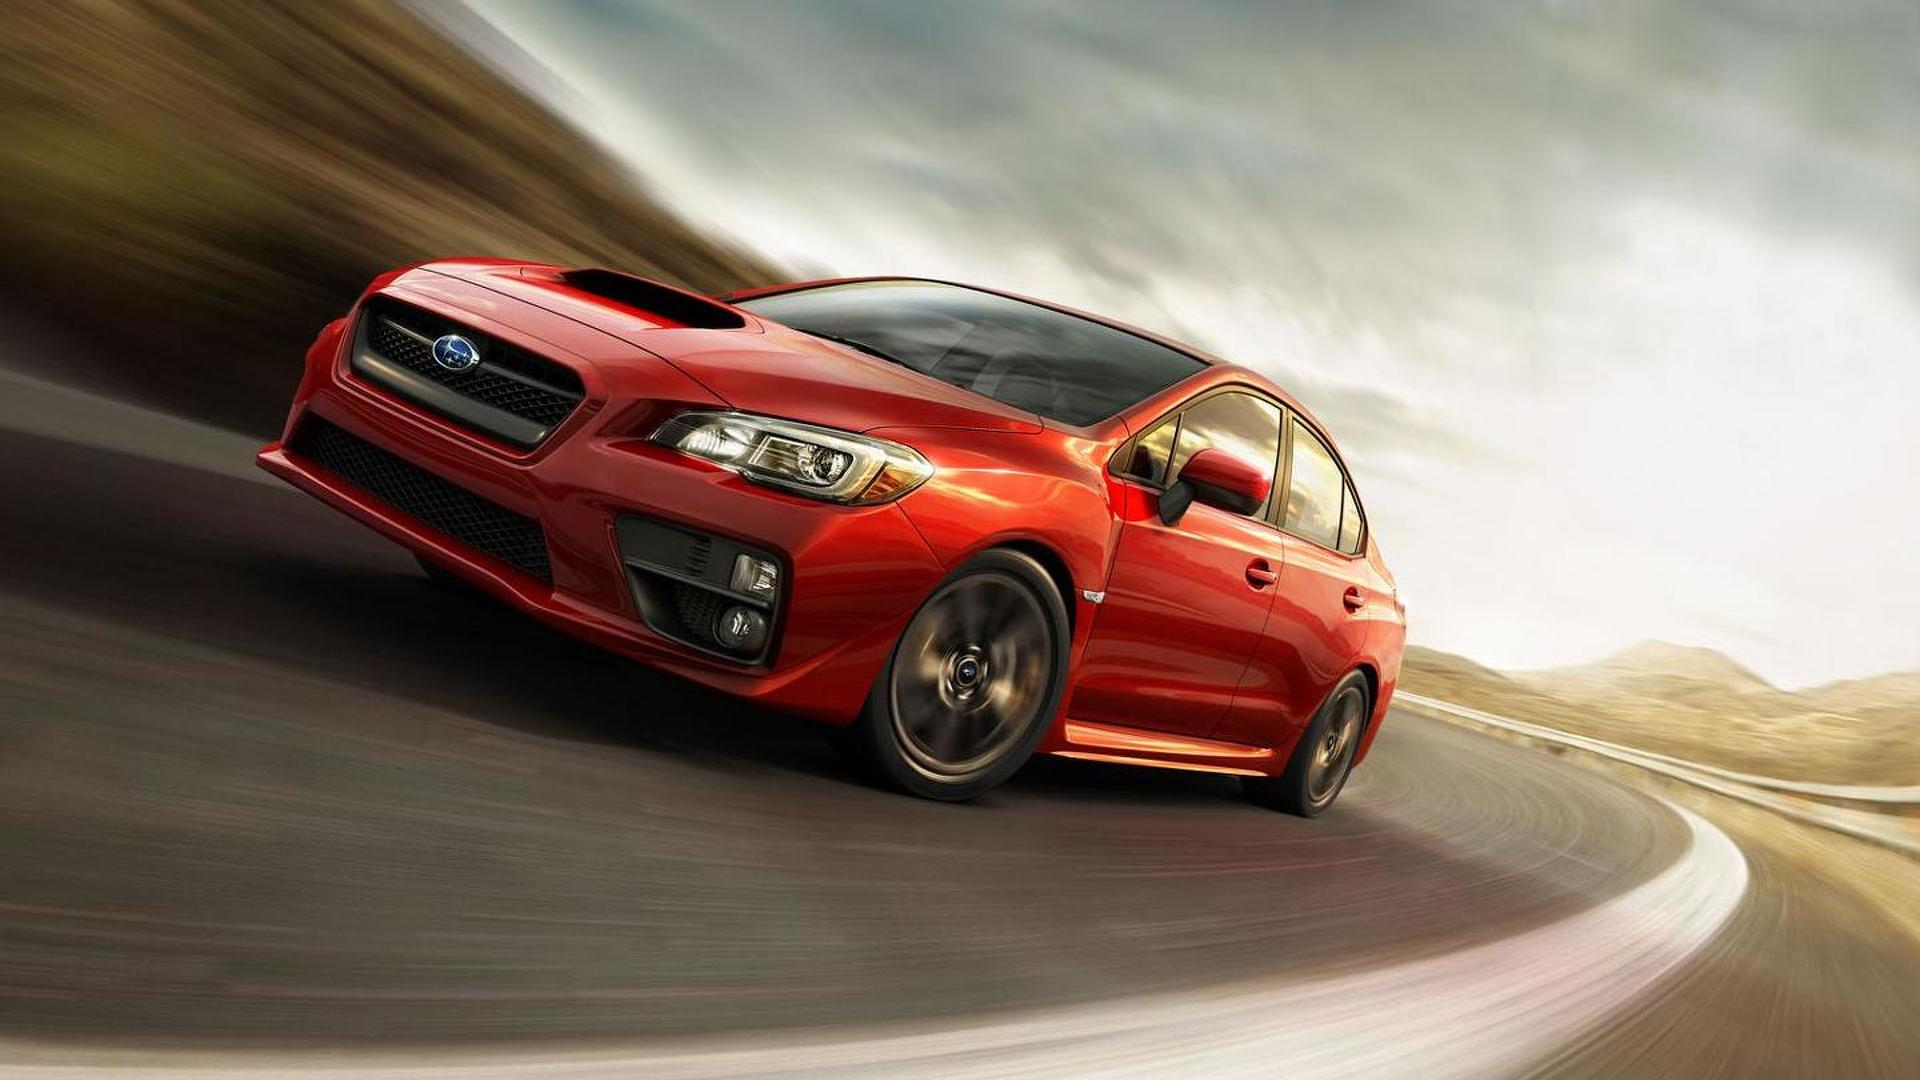 2015 Subaru WRX shows its rallying credentials in new promo clip